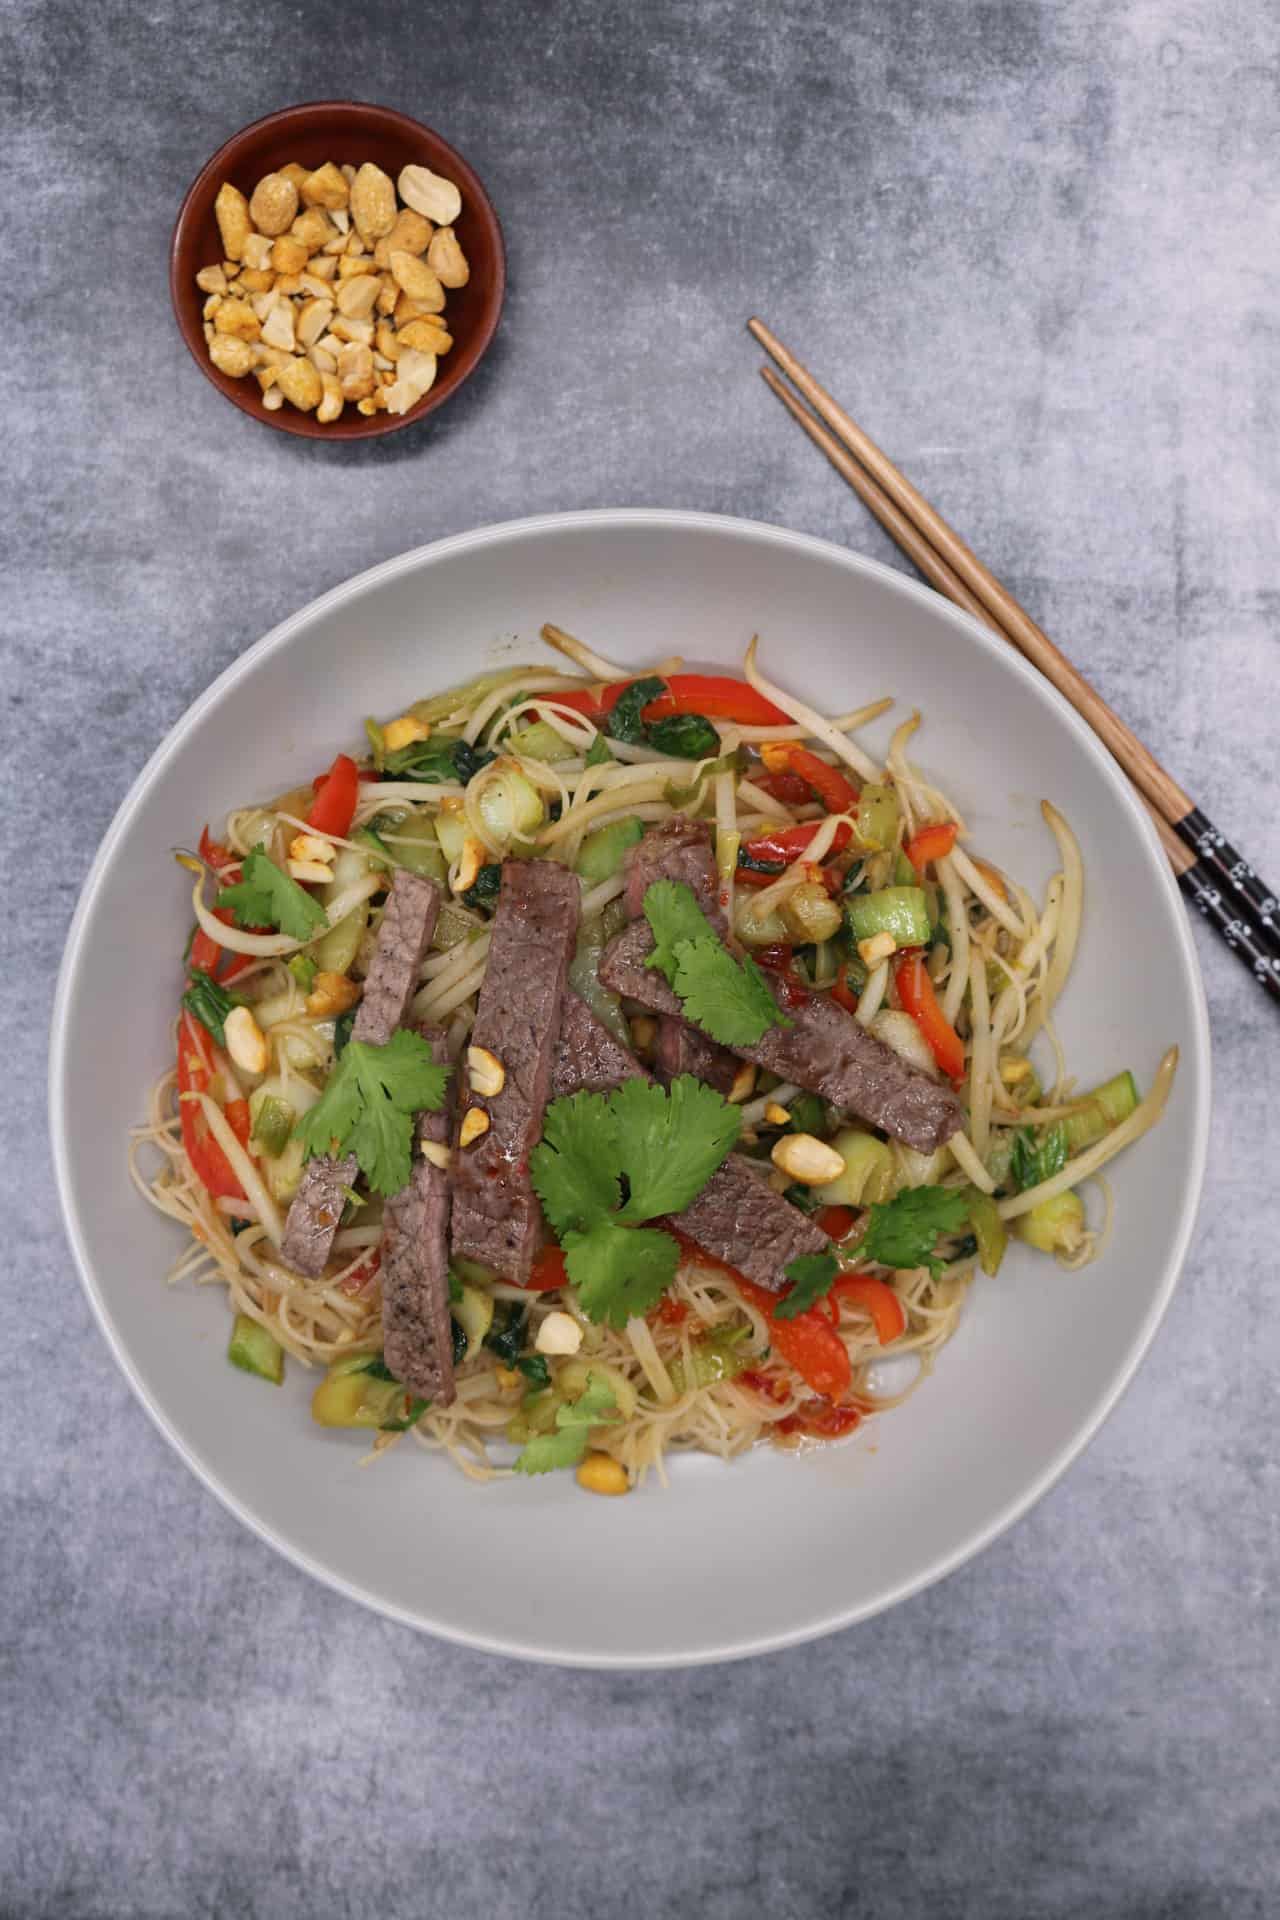 Chilli Beef and Vegetable Rice Noodles with Peanuts, Chilli Beef and Vegetable Rice Noodles with Peanuts